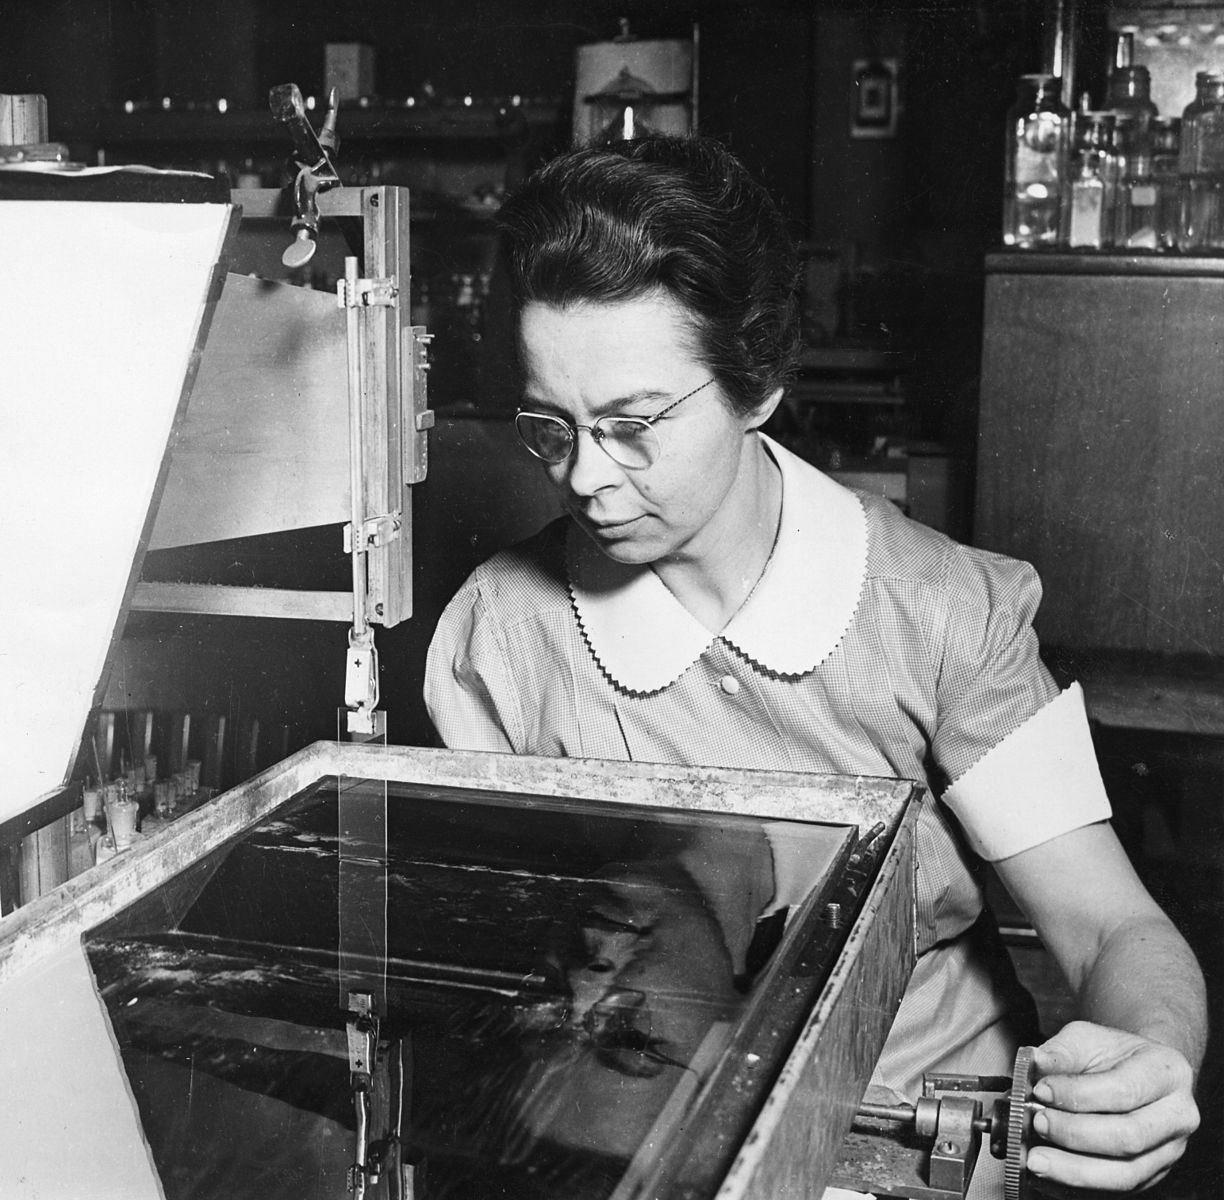 Blodgett was a physicist and chemist, as well as the first woman to earn a PhD in physics from University of Cambridge. She invented non-reflective, or invisible, glass, which was famously first used in  Gone with the Wind  for very clear cinematography.